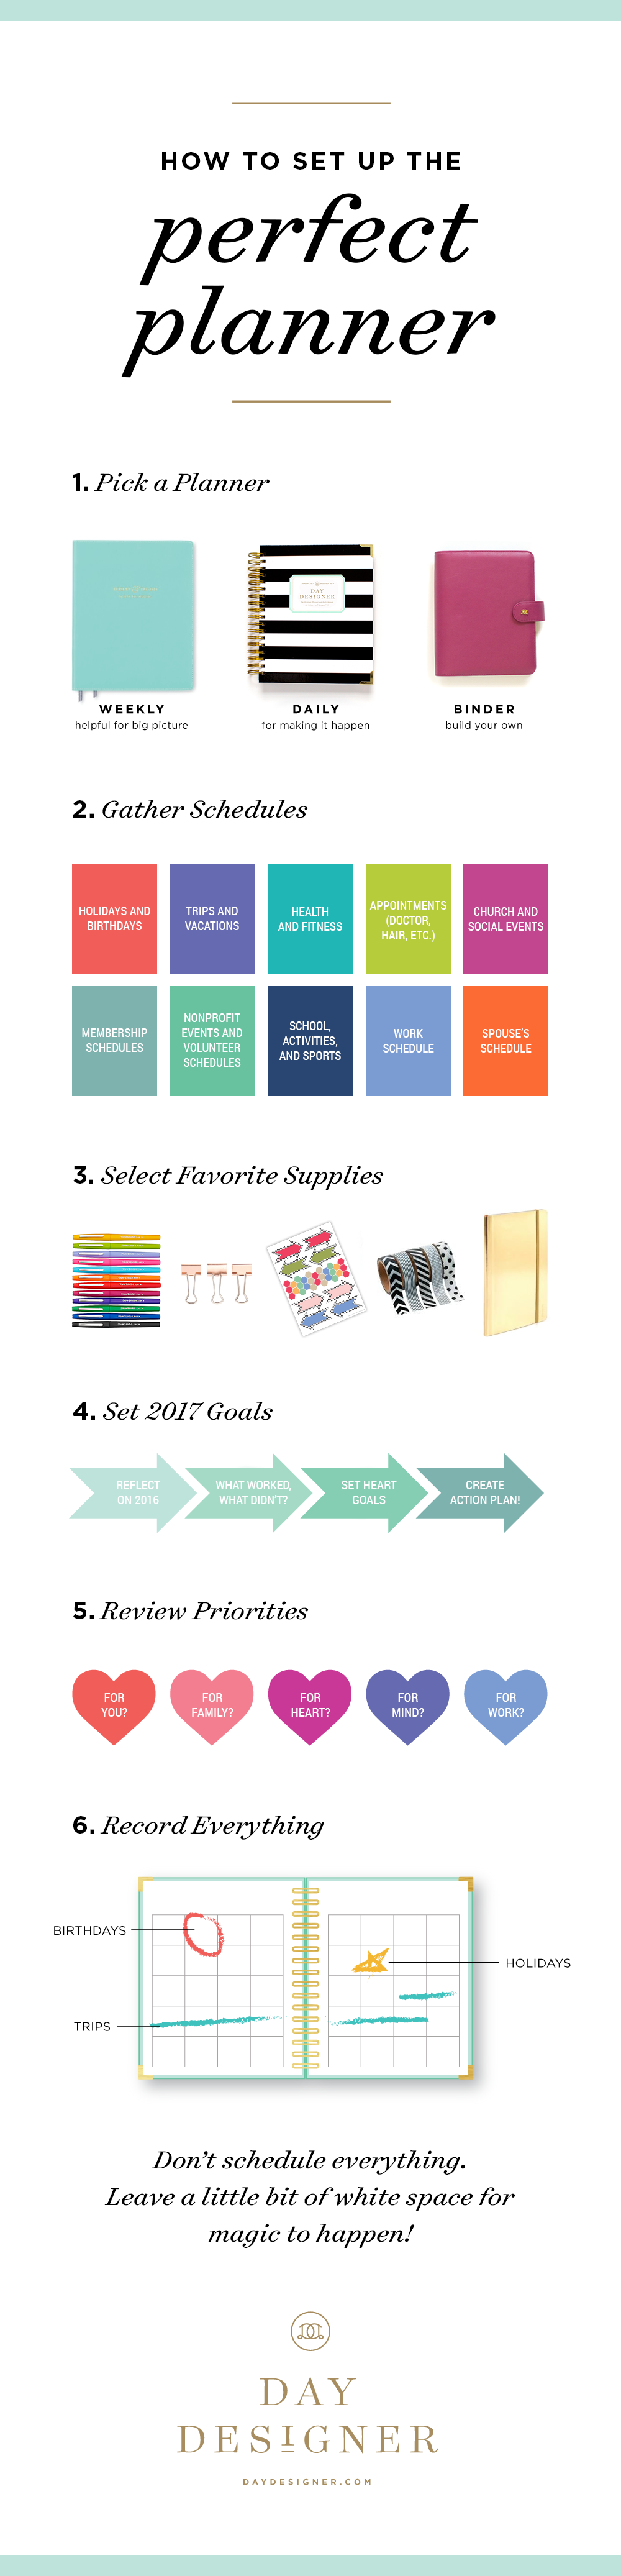 how to set up the perfect 2017 planner choose weekly daily or a